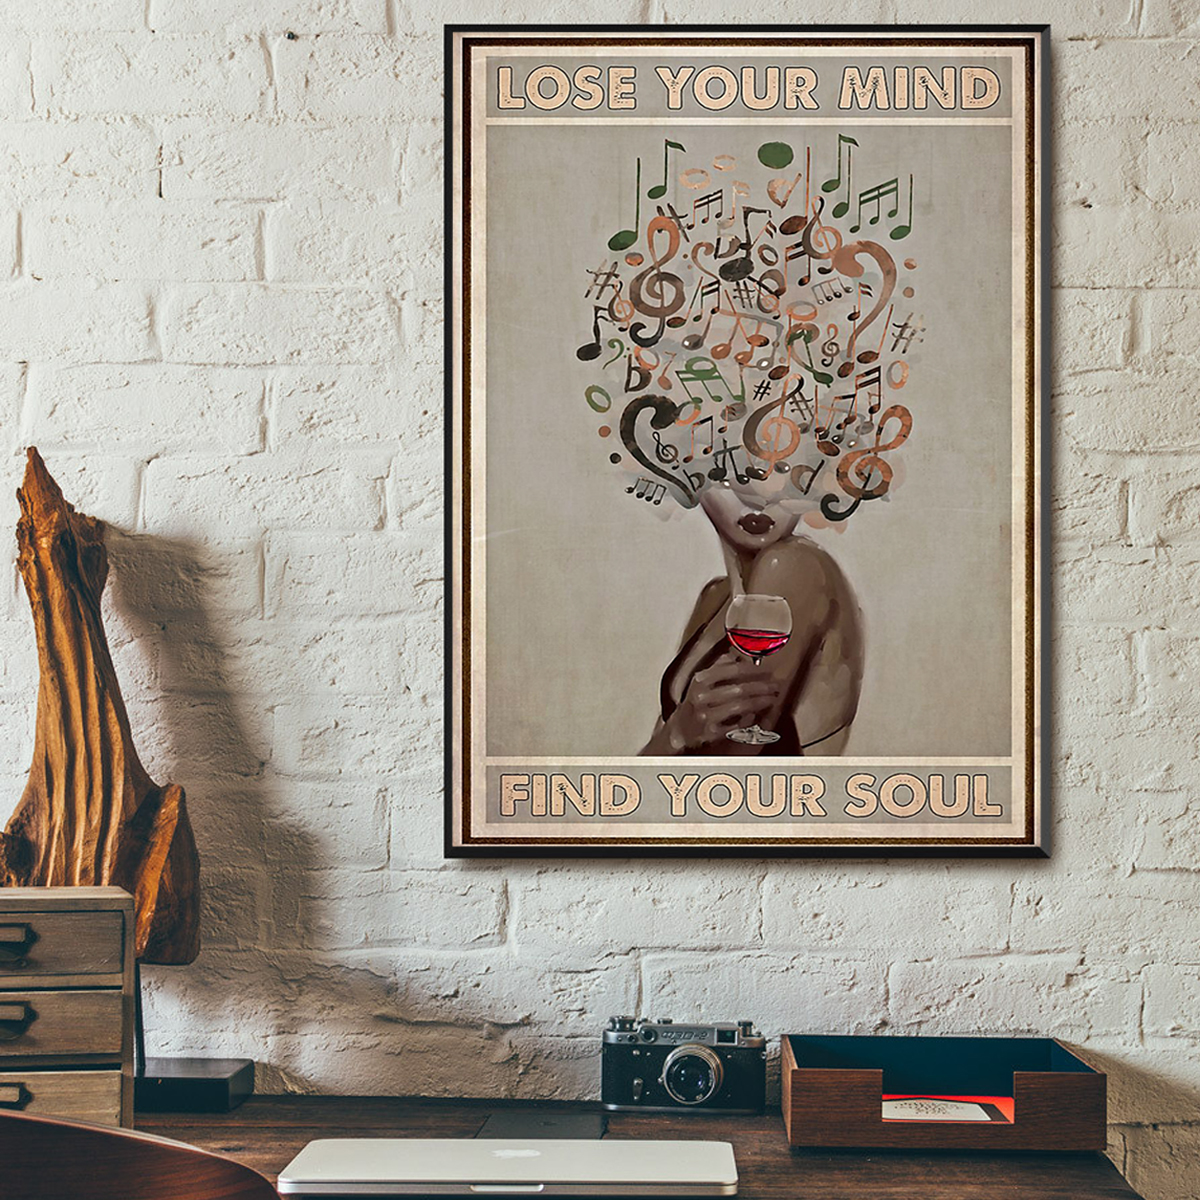 Vinyl and wine lose your mind find your soul poster A2